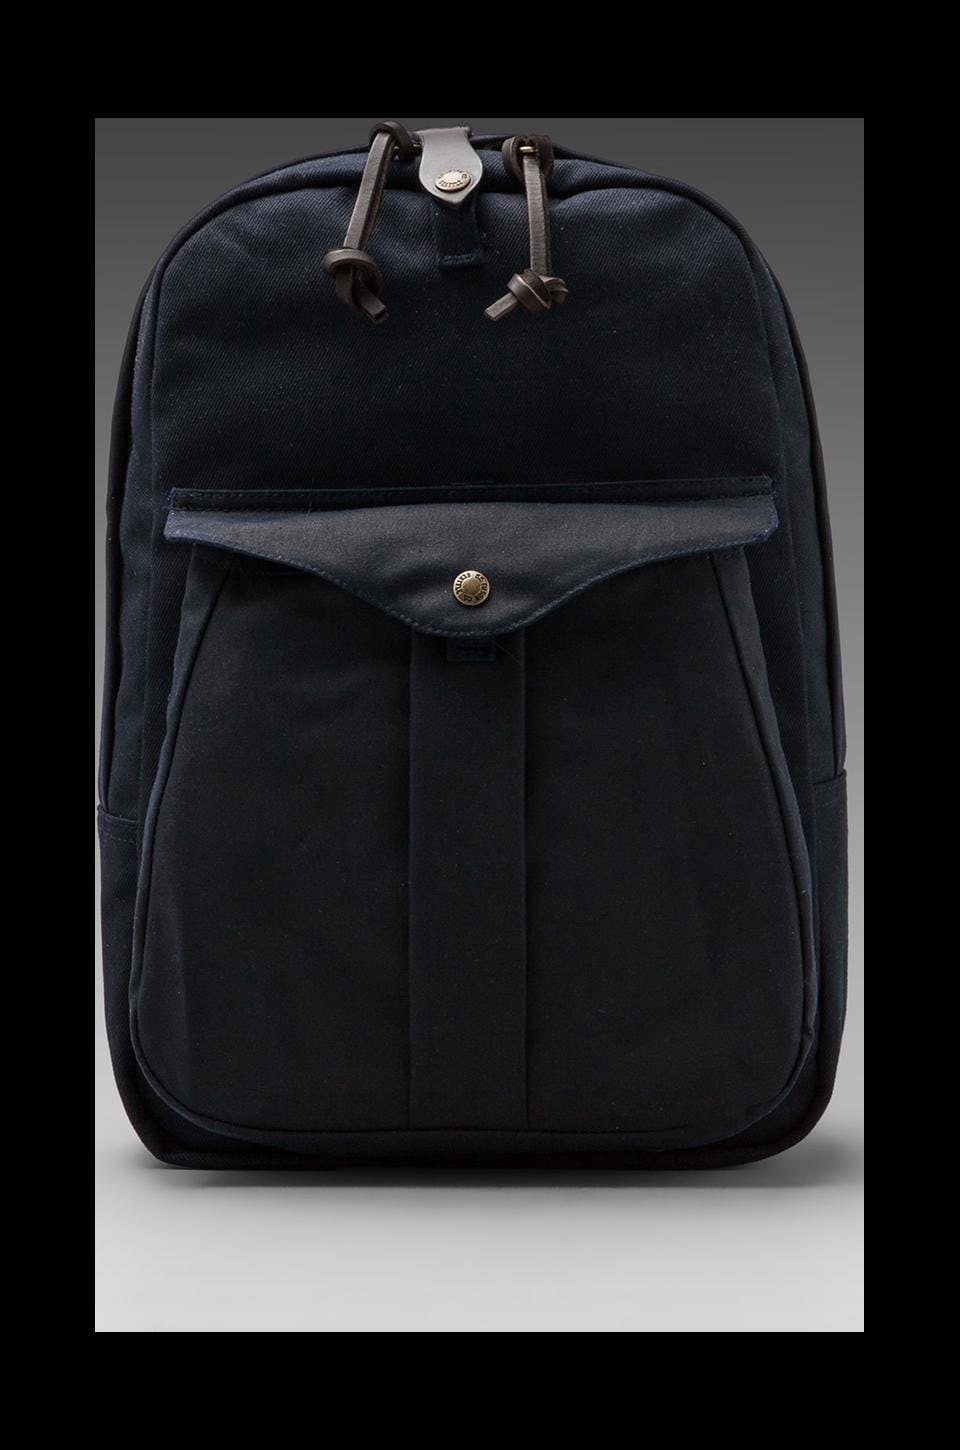 Filson Twill Backpack in Navy/ Navy